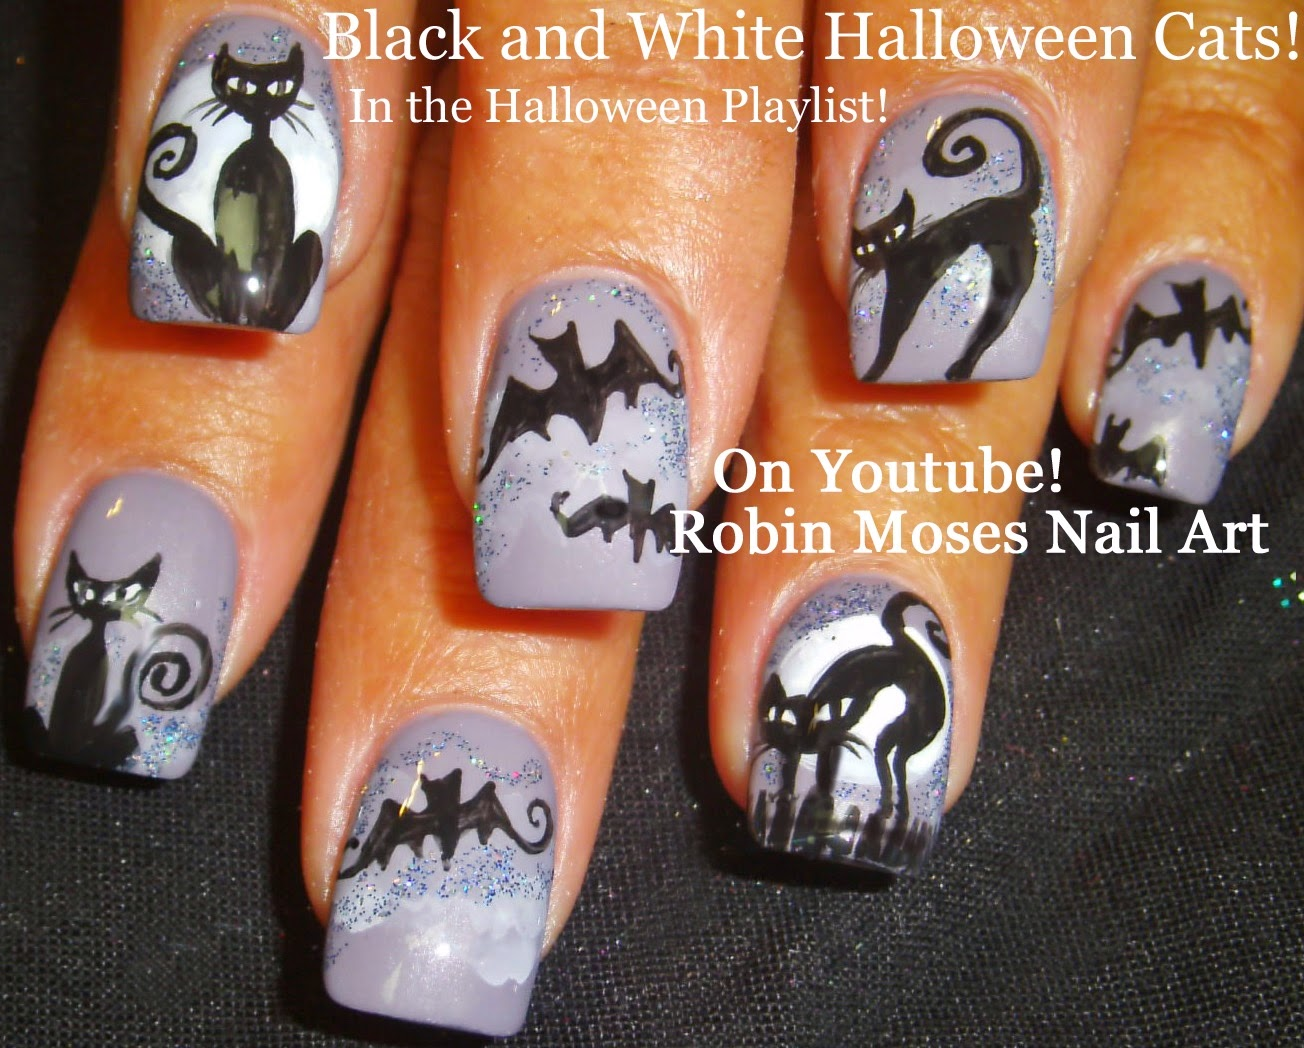 35 Fall Nail Art Ideas  Best Nail Designs and Tutorials